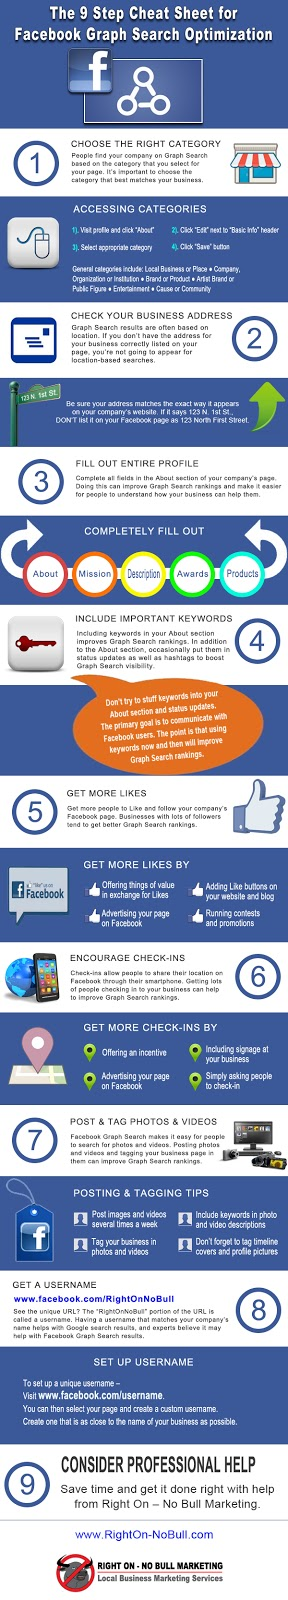 Cheat Sheet for Facebook Graph Search Optimization